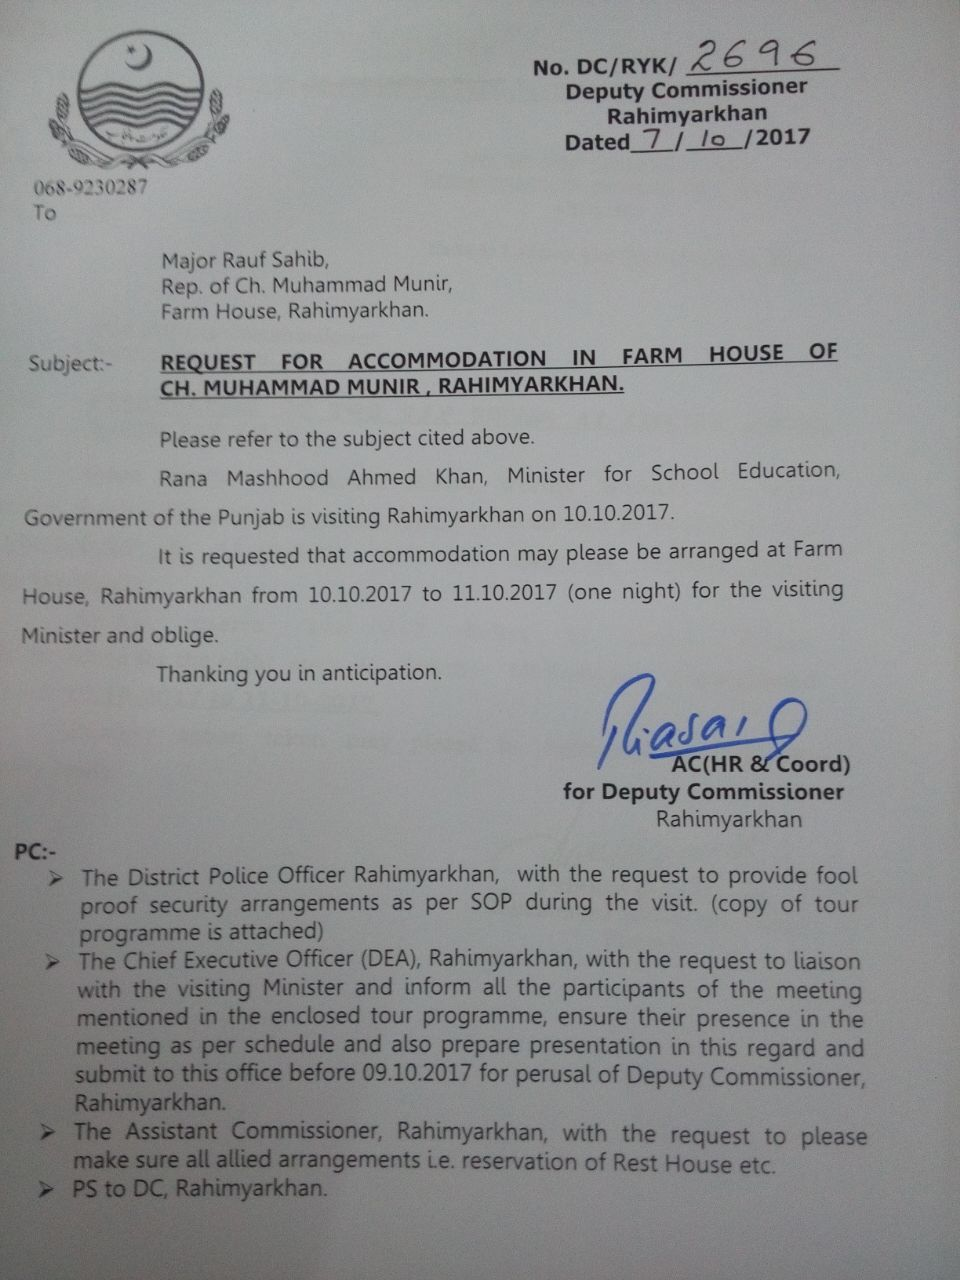 RANA MASHOOD AHMAD KHAN MINISTER FOR EDUCATION VISIT RAHIMYARKHAN FROM TUESDAY